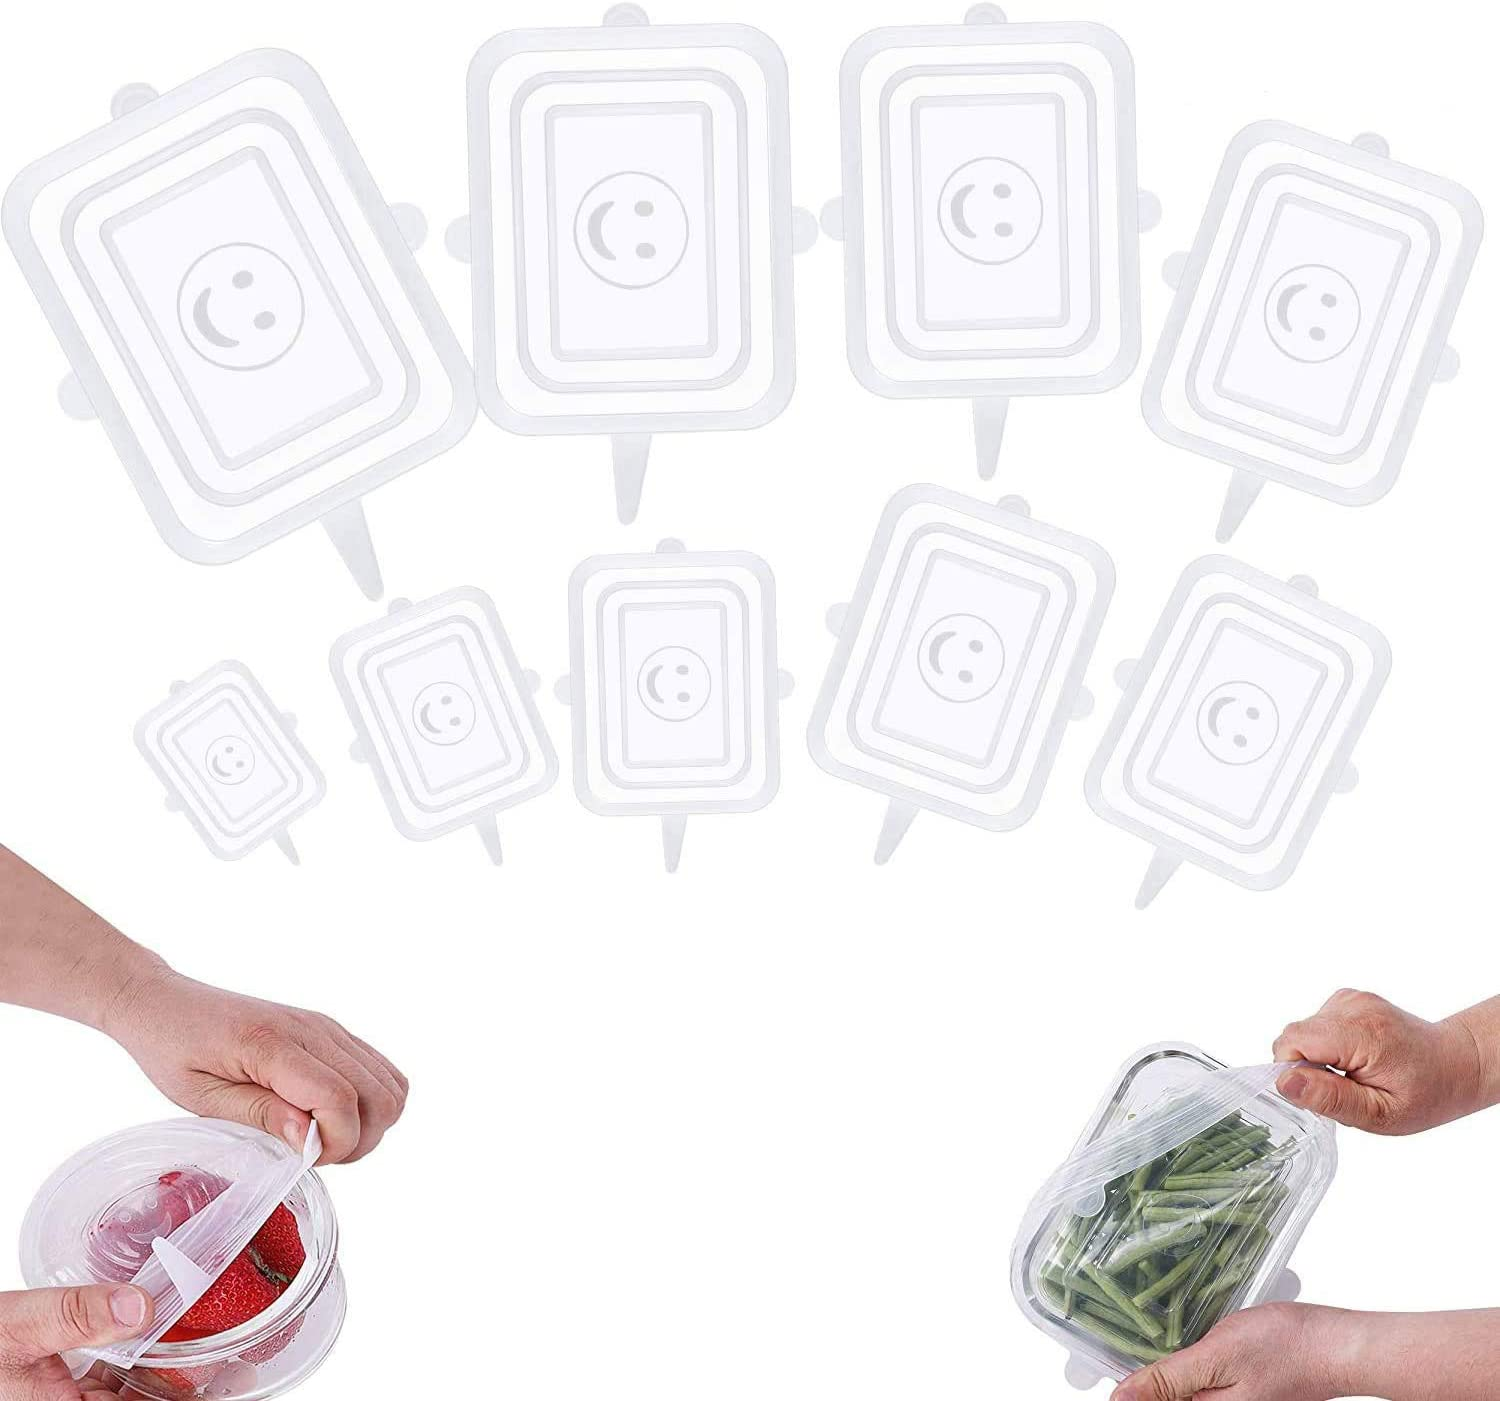 BOSERI Silicone Stretch Lids,9 Pack Reusable and Expandable Lids 9 Clear Rectangle, Silicone Covers for Fresh Food - Keep Food Fresh, Stretch for Container, Bowl, Cups, Cans